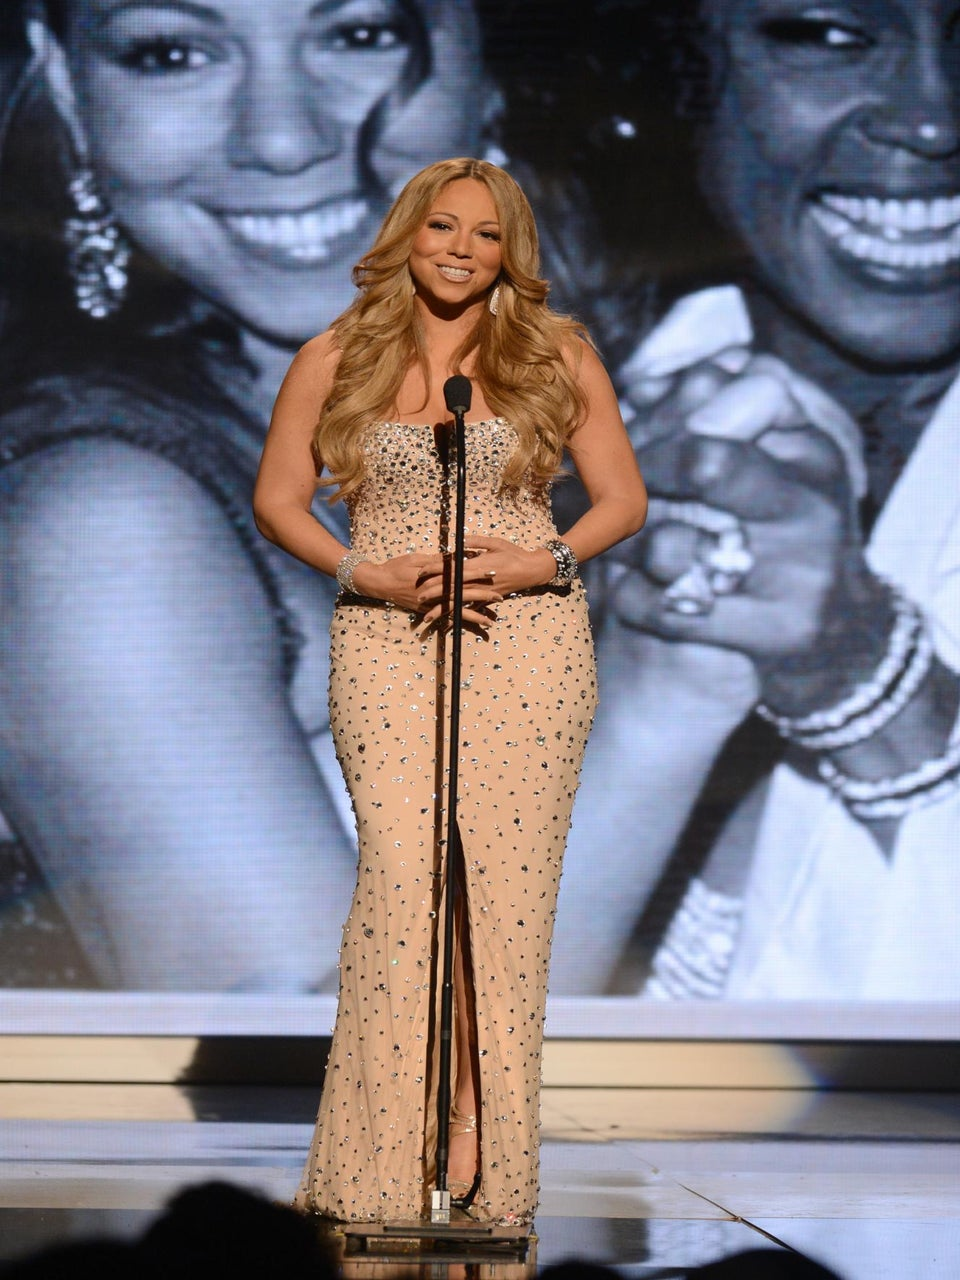 Must-See: Mariah Carey Dazzles in 'Triumphant' Music Video